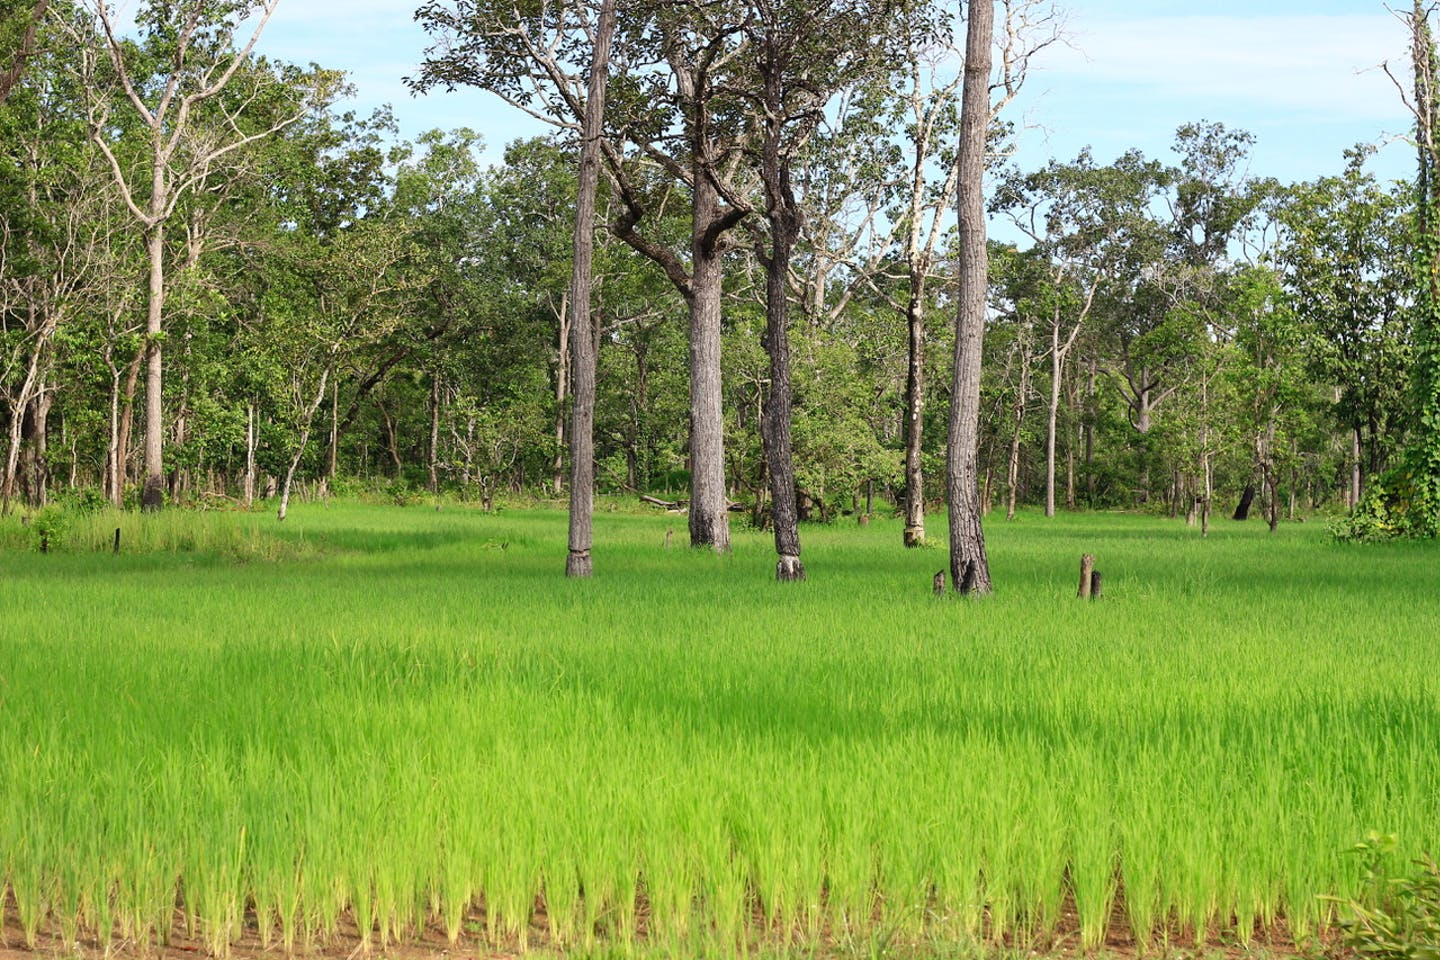 Rice farming is critical to Cambodia's economy and food security, but the crop contributes to loss of natural habitat in the Southeast Asian country. Image: